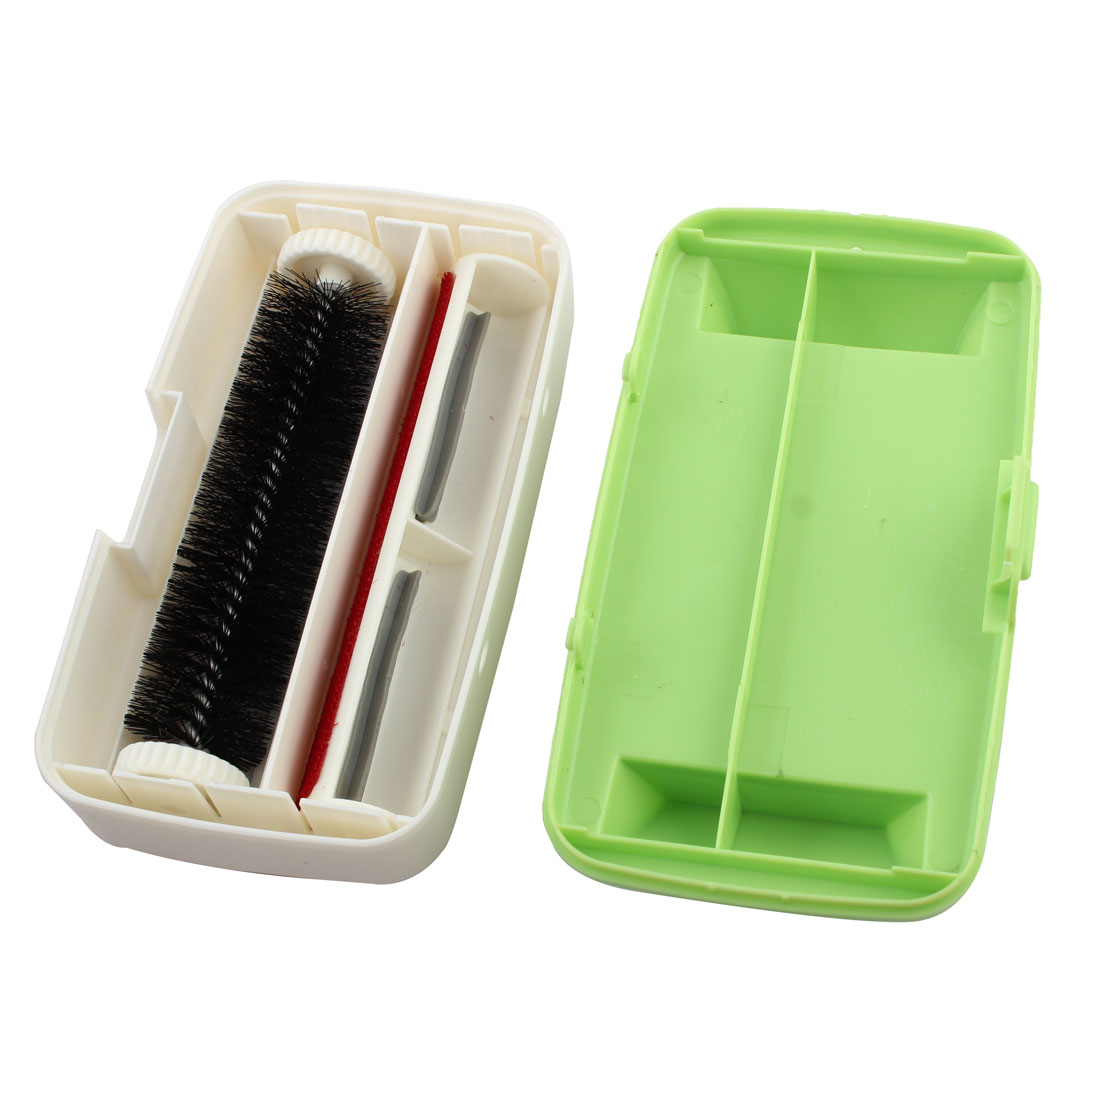 Household Bed Clothes Plastic Dual purpose Dust Removing Collector Brush Green - image 1 of 4